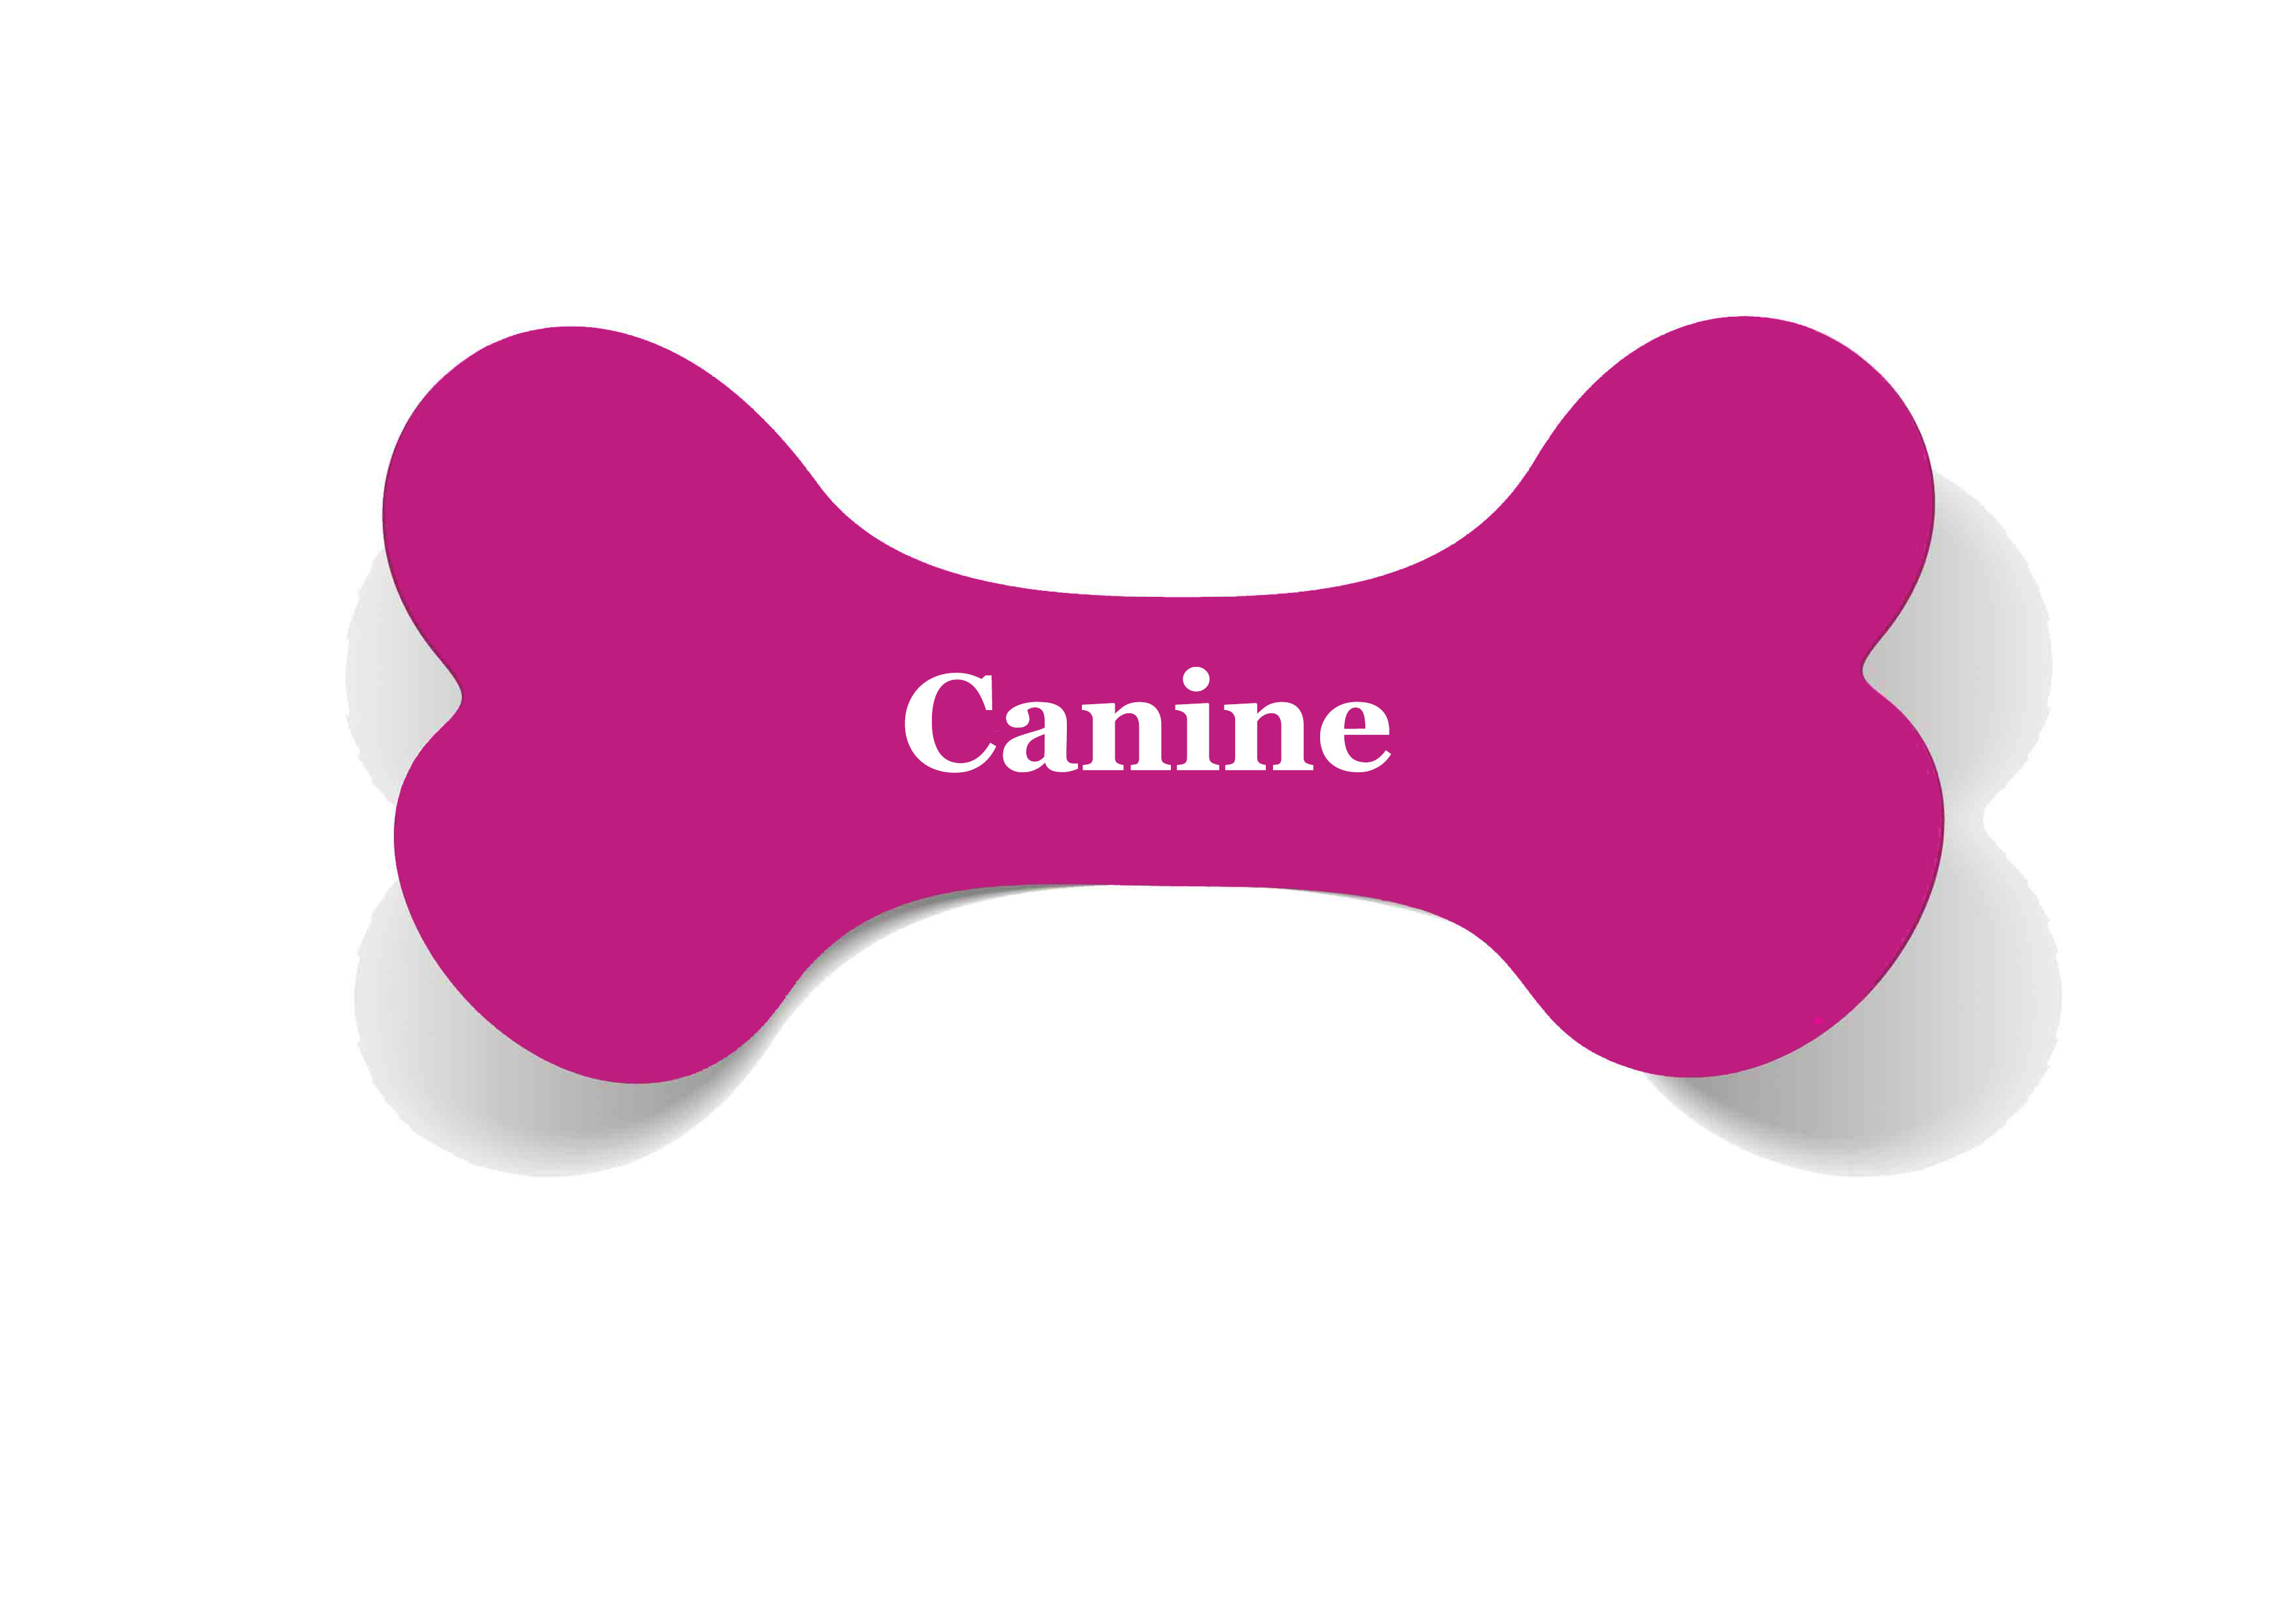 Canine